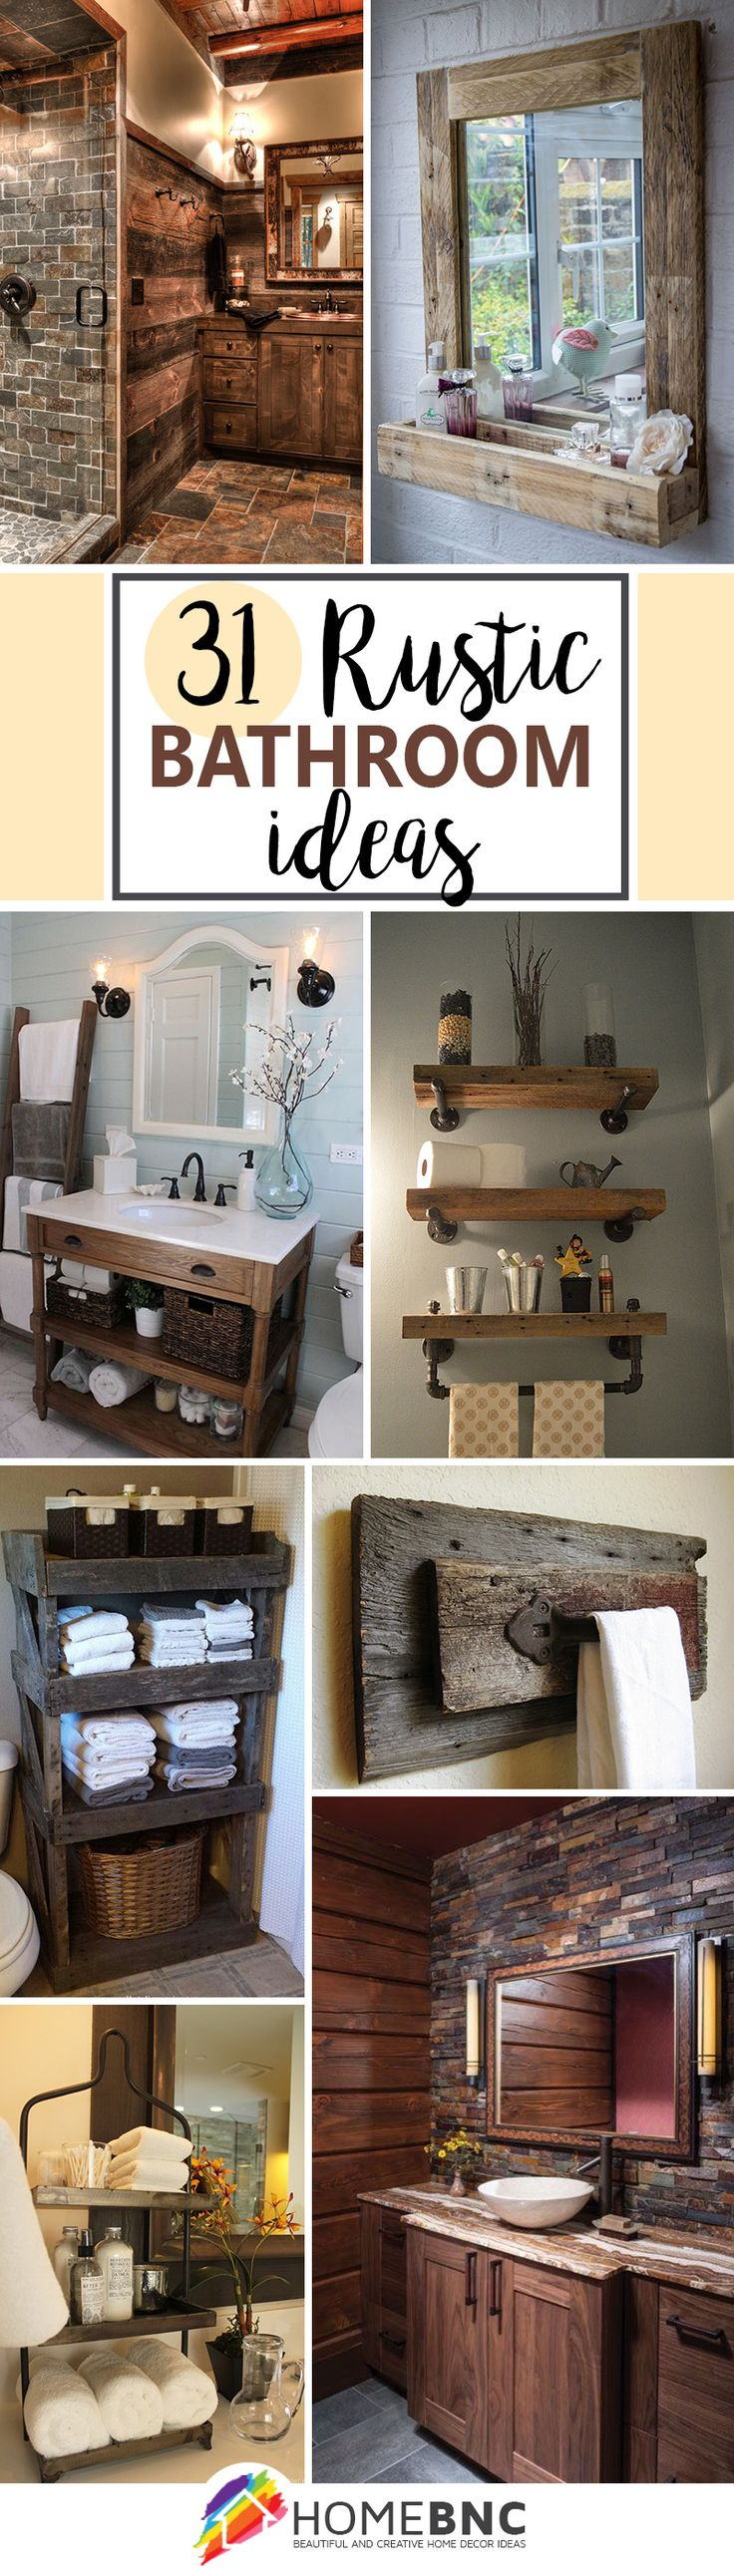 rustic wood bathroom accessories. 31 Gorgeous Rustic Bathroom Decor Ideas to Try at Home Best 25  bathroom decor ideas on Pinterest